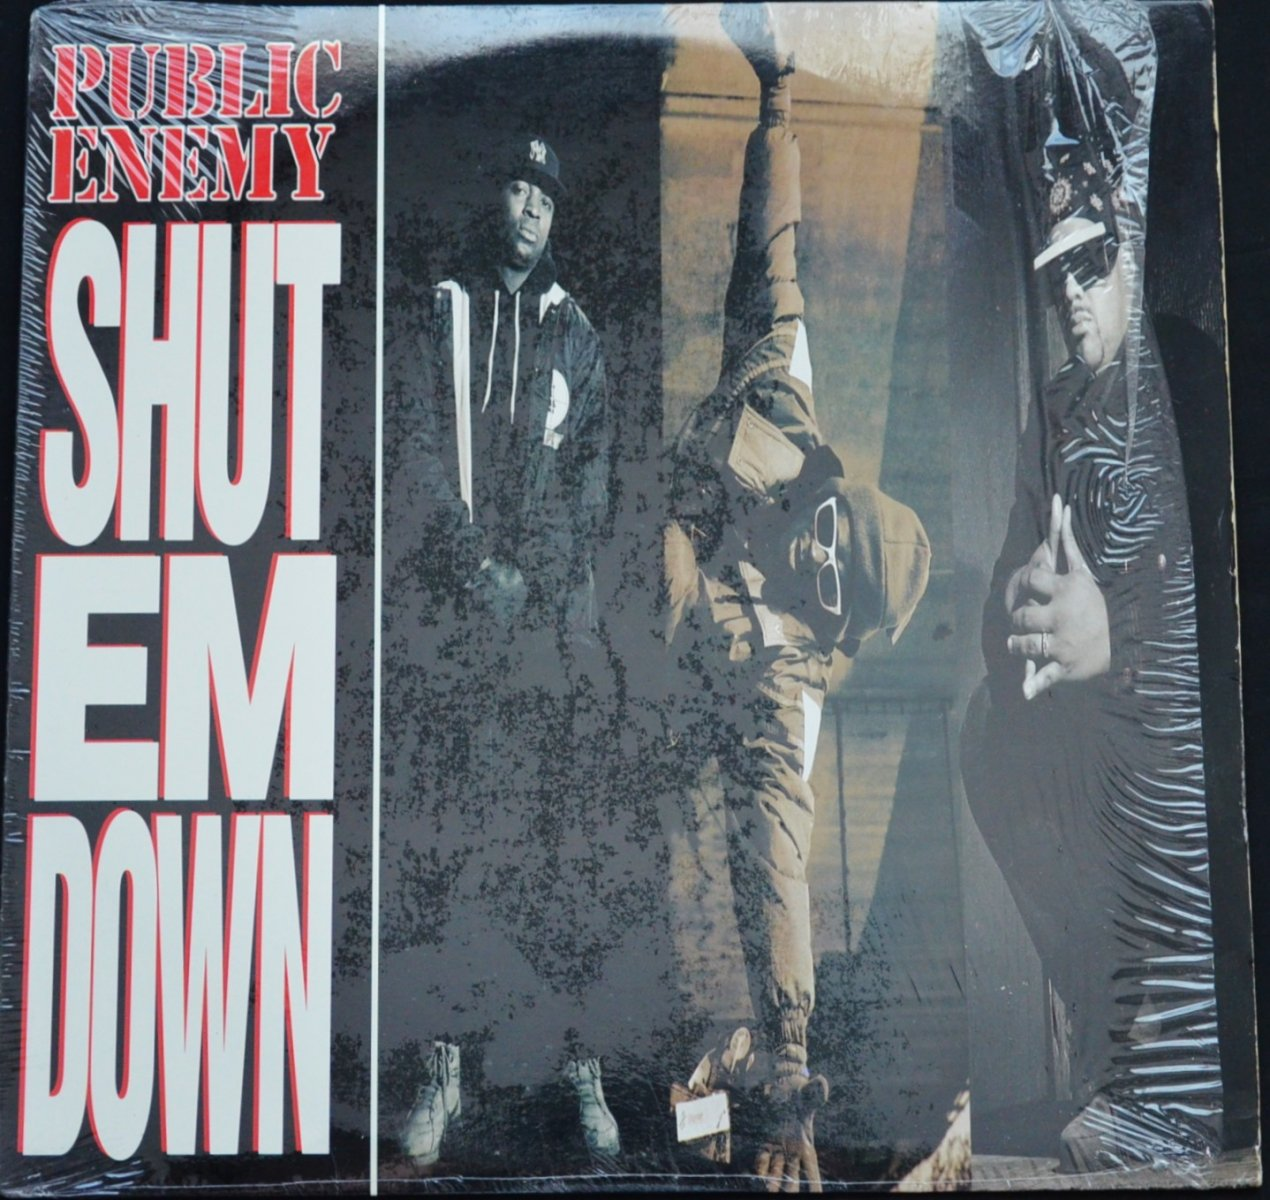 PUBLIC ENEMY / SHUT EM DOWN (PETE ROCK REMIX) / BY THE TIME I GET TO ARIZONA (12